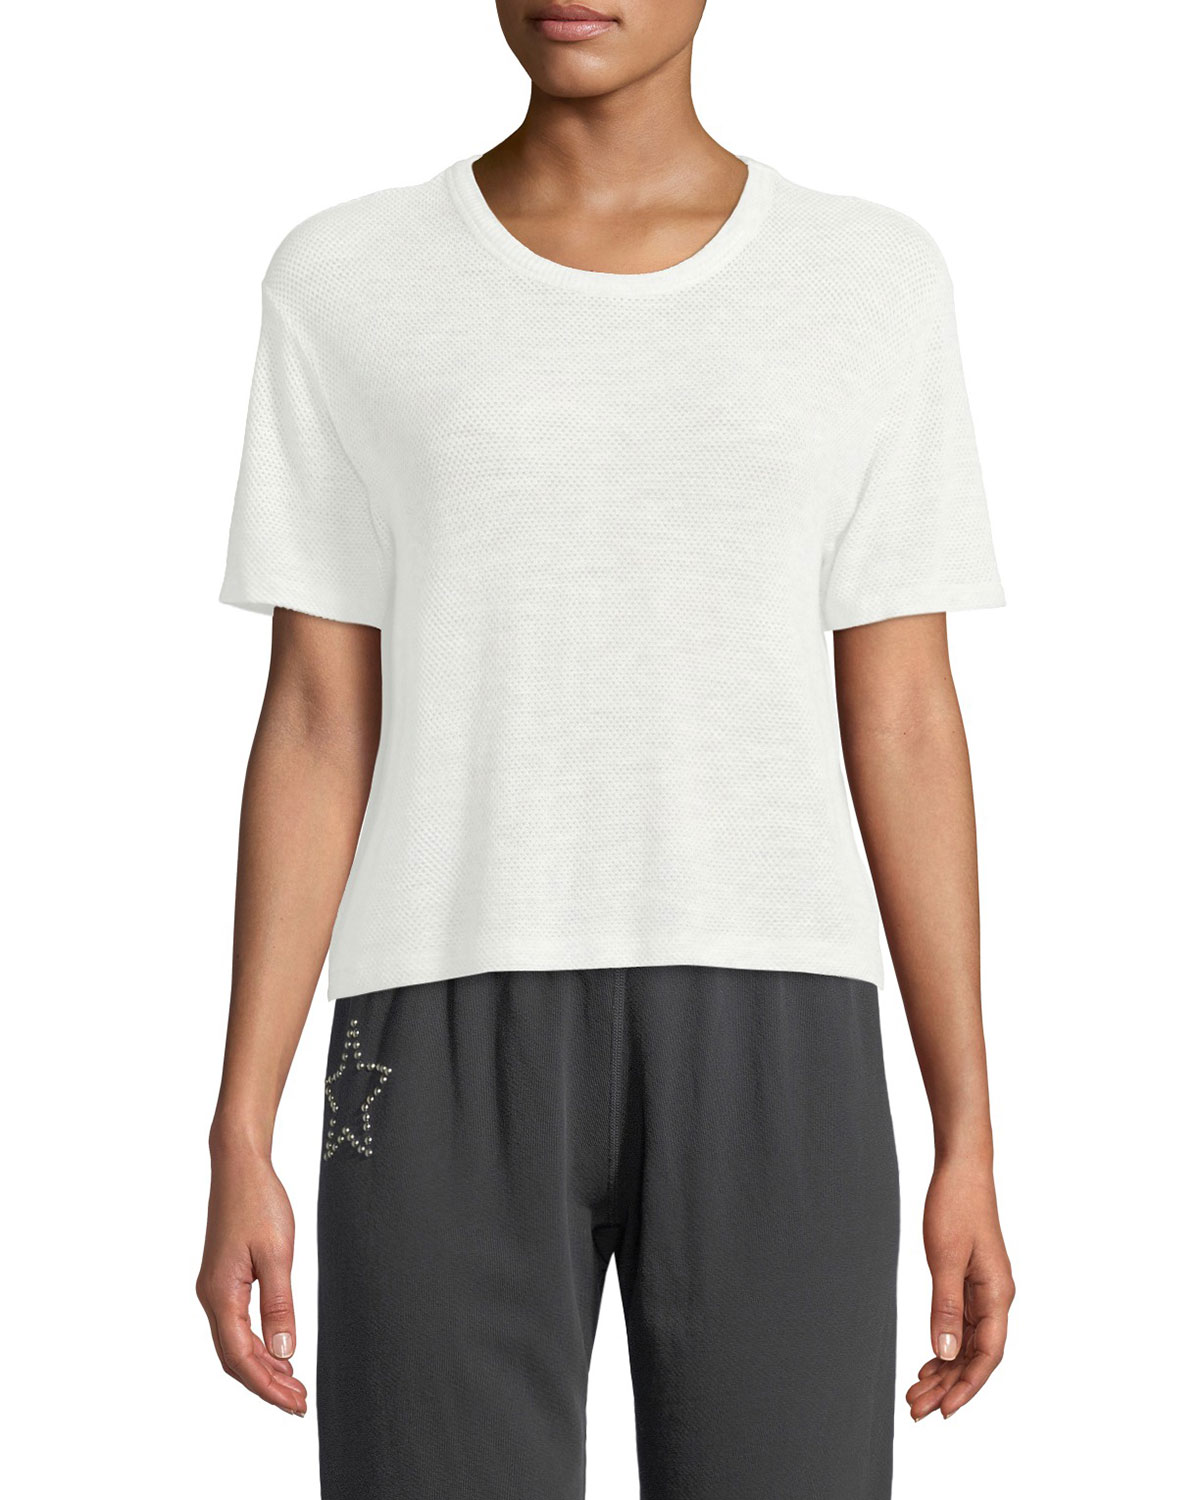 Monrow Mesh Scoop-Neck Athletic Tee